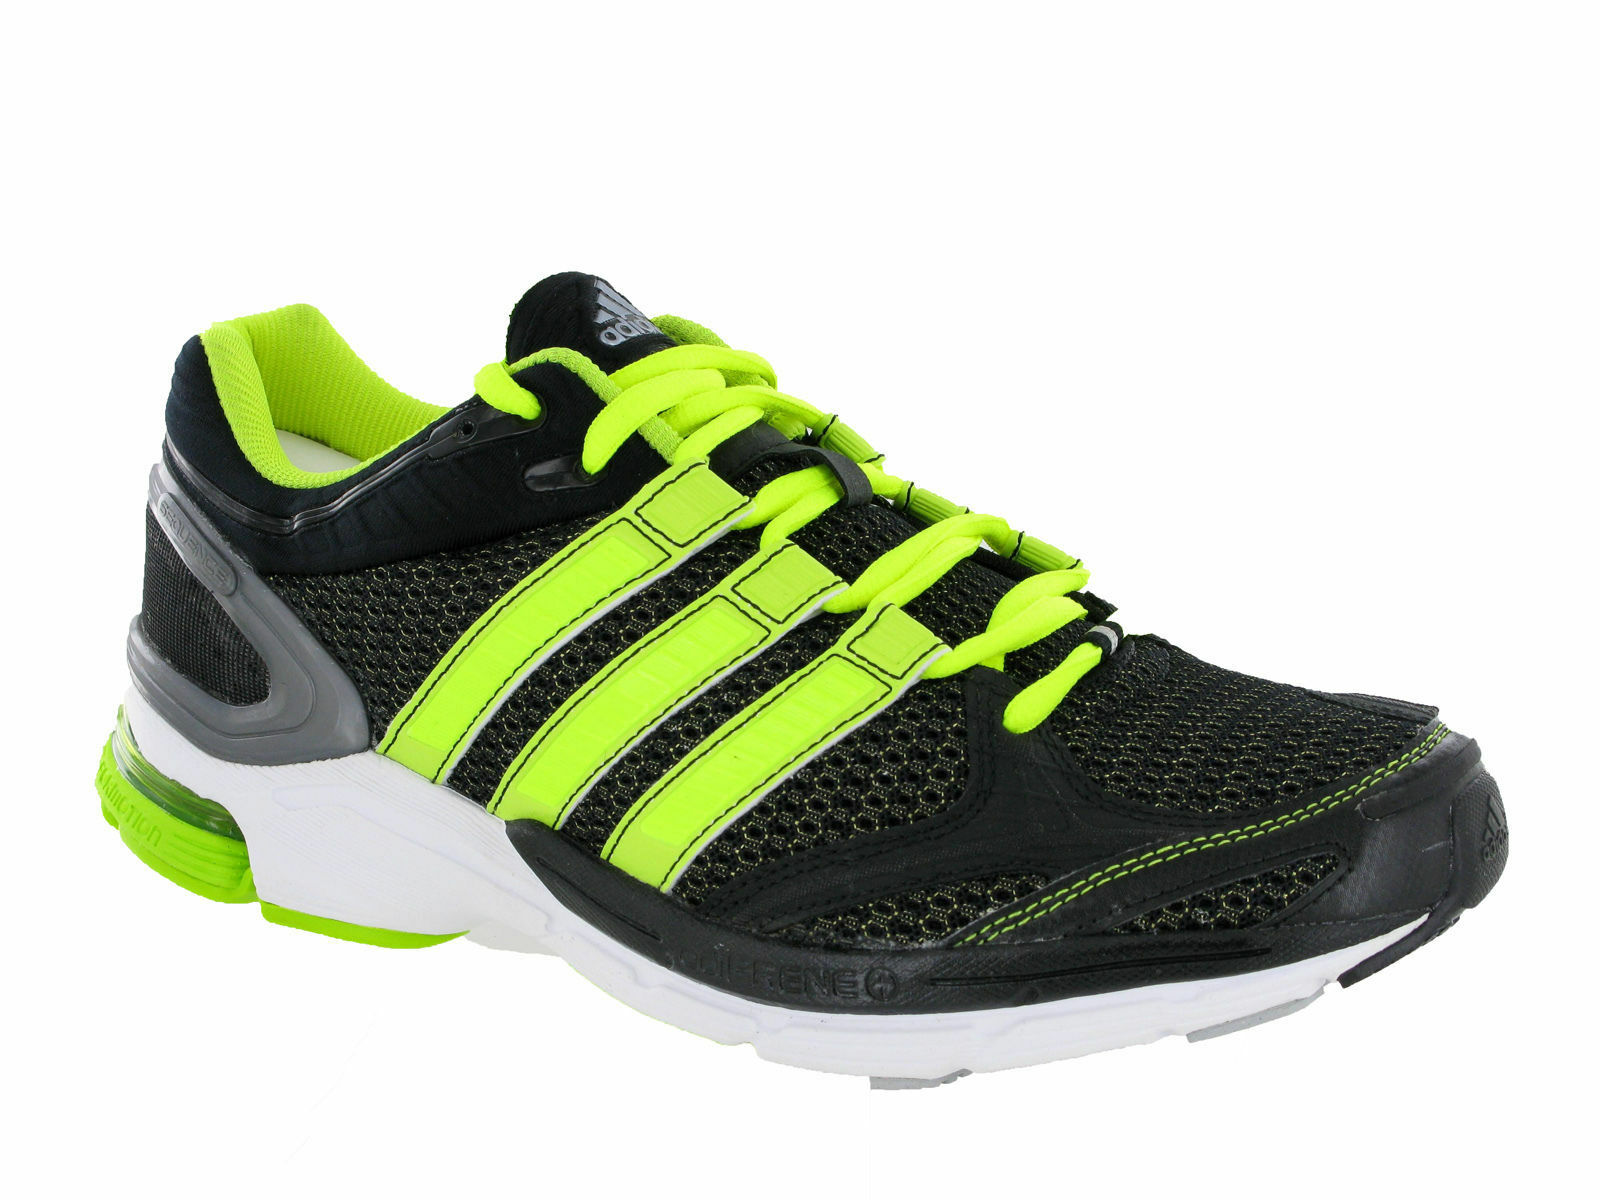 Hommes ADIDAS ZX WEAVE 900 WEAVE ZX Running Trainers M19802 67d092